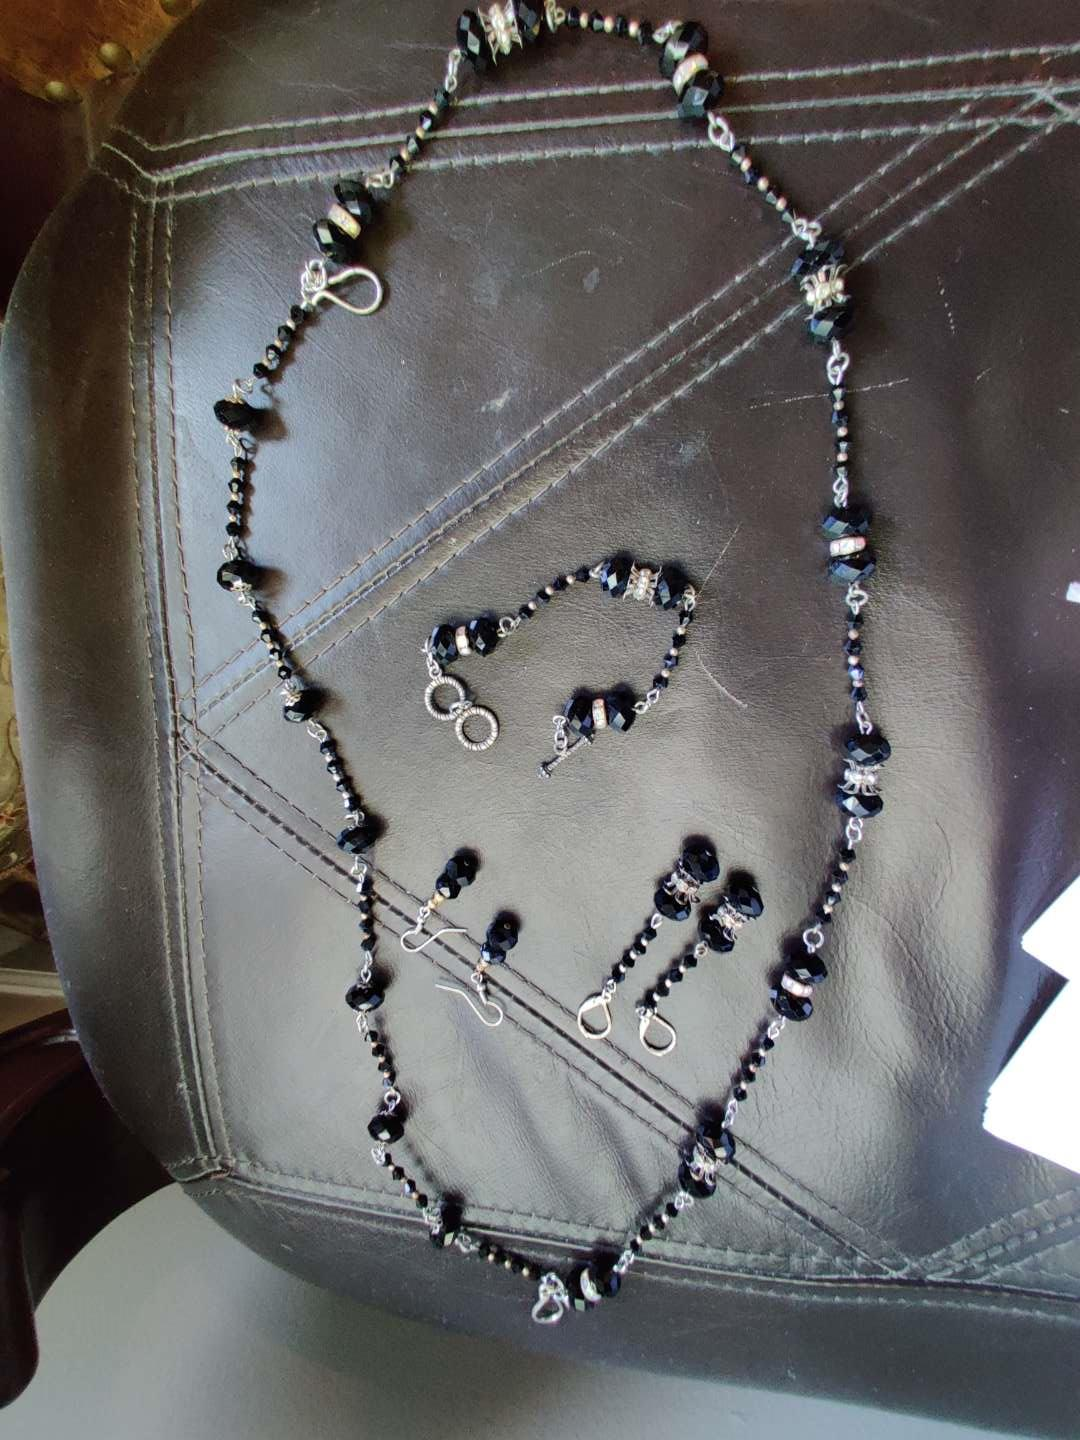 252 costume jewelry set necklace bracelet two pair earrings